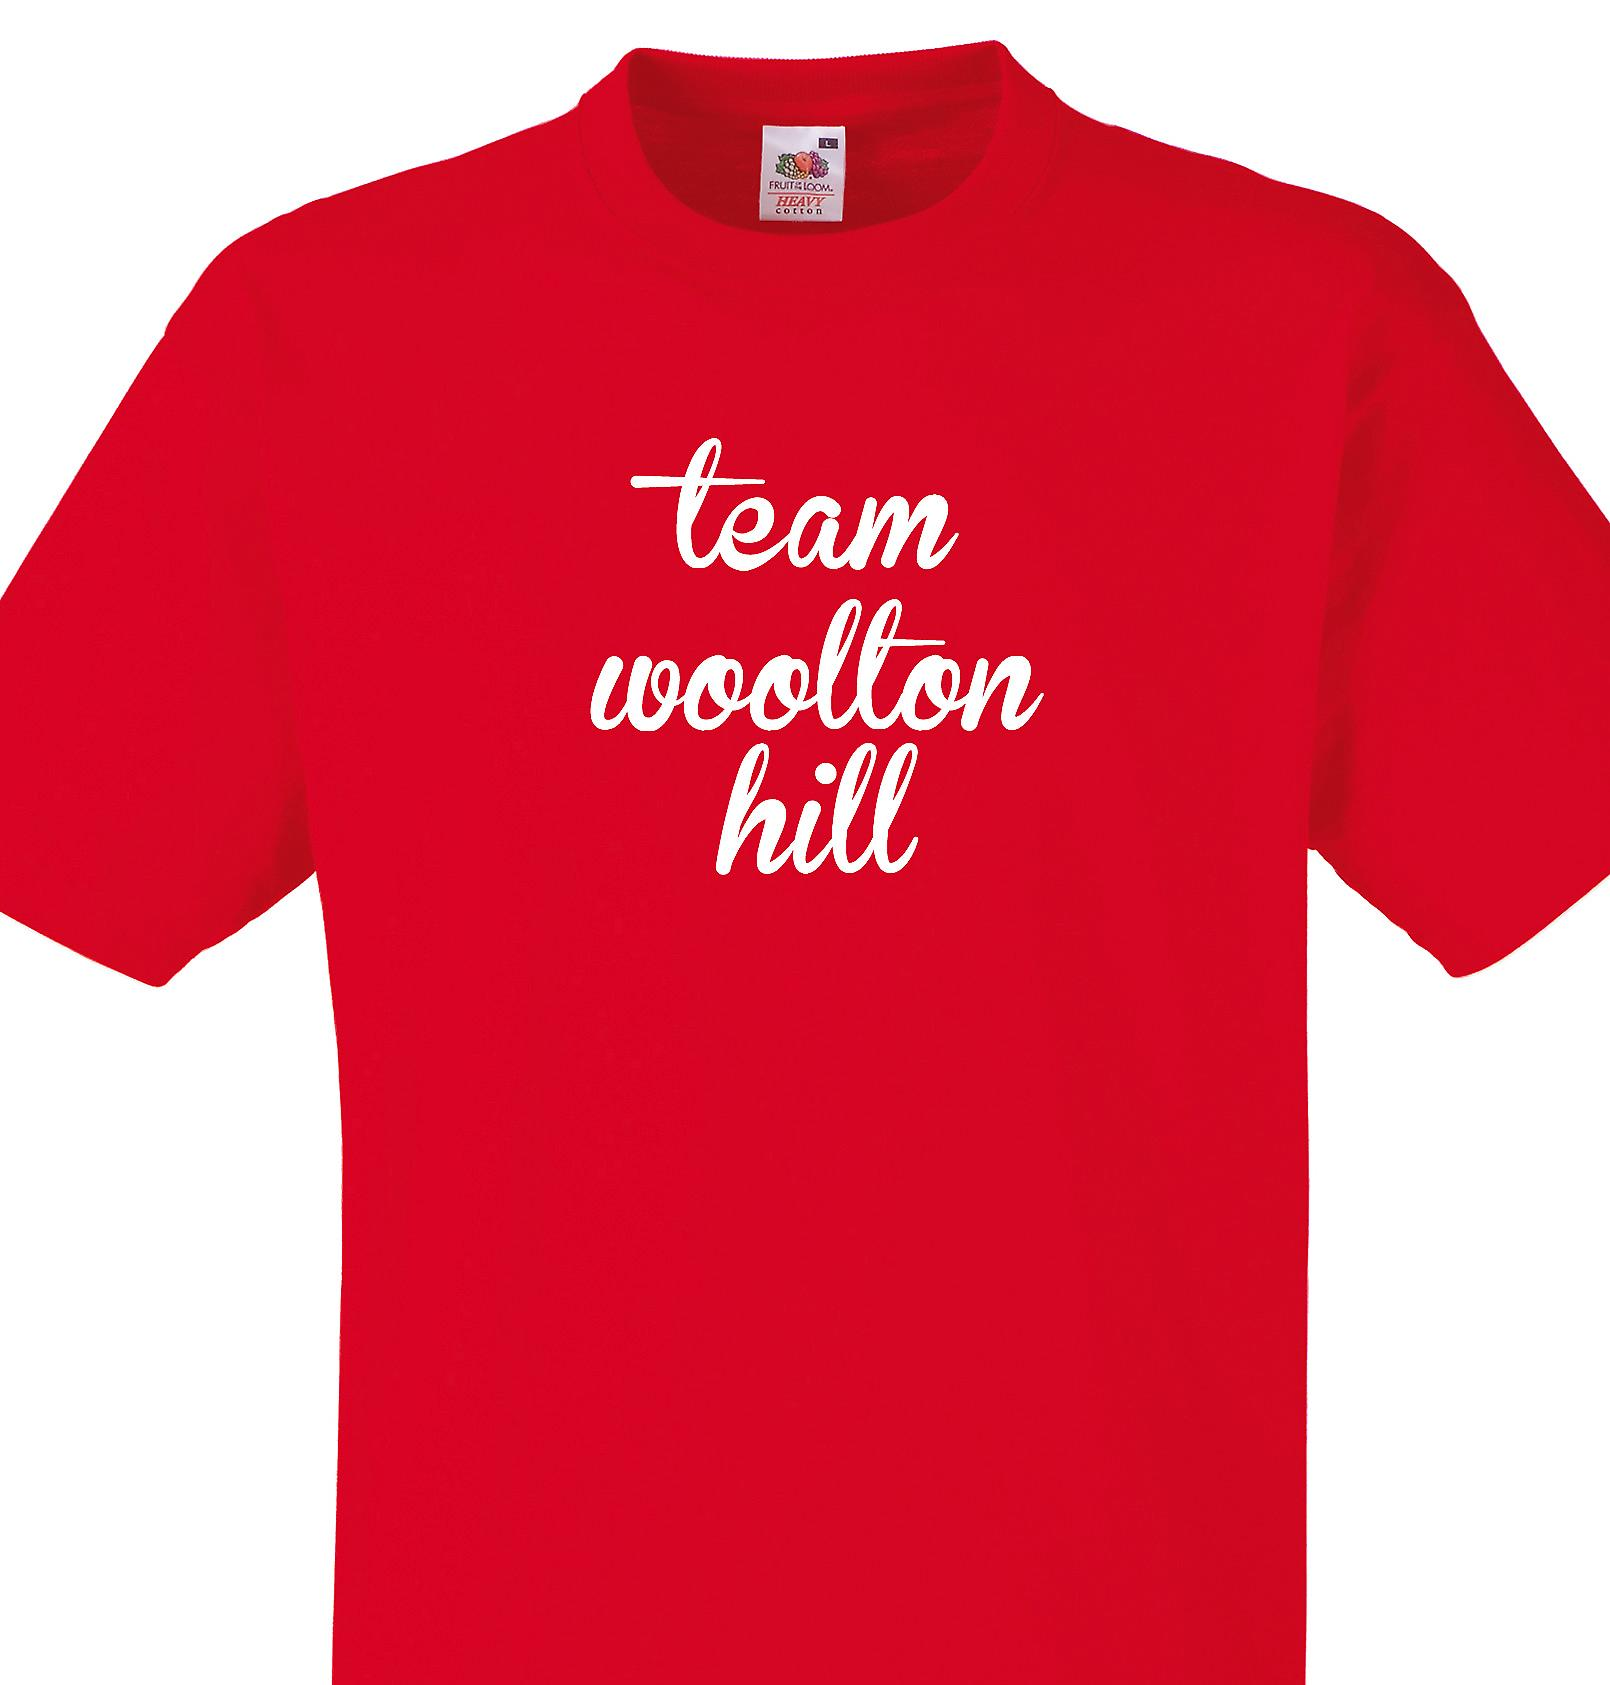 Team Woolton hill Red T shirt